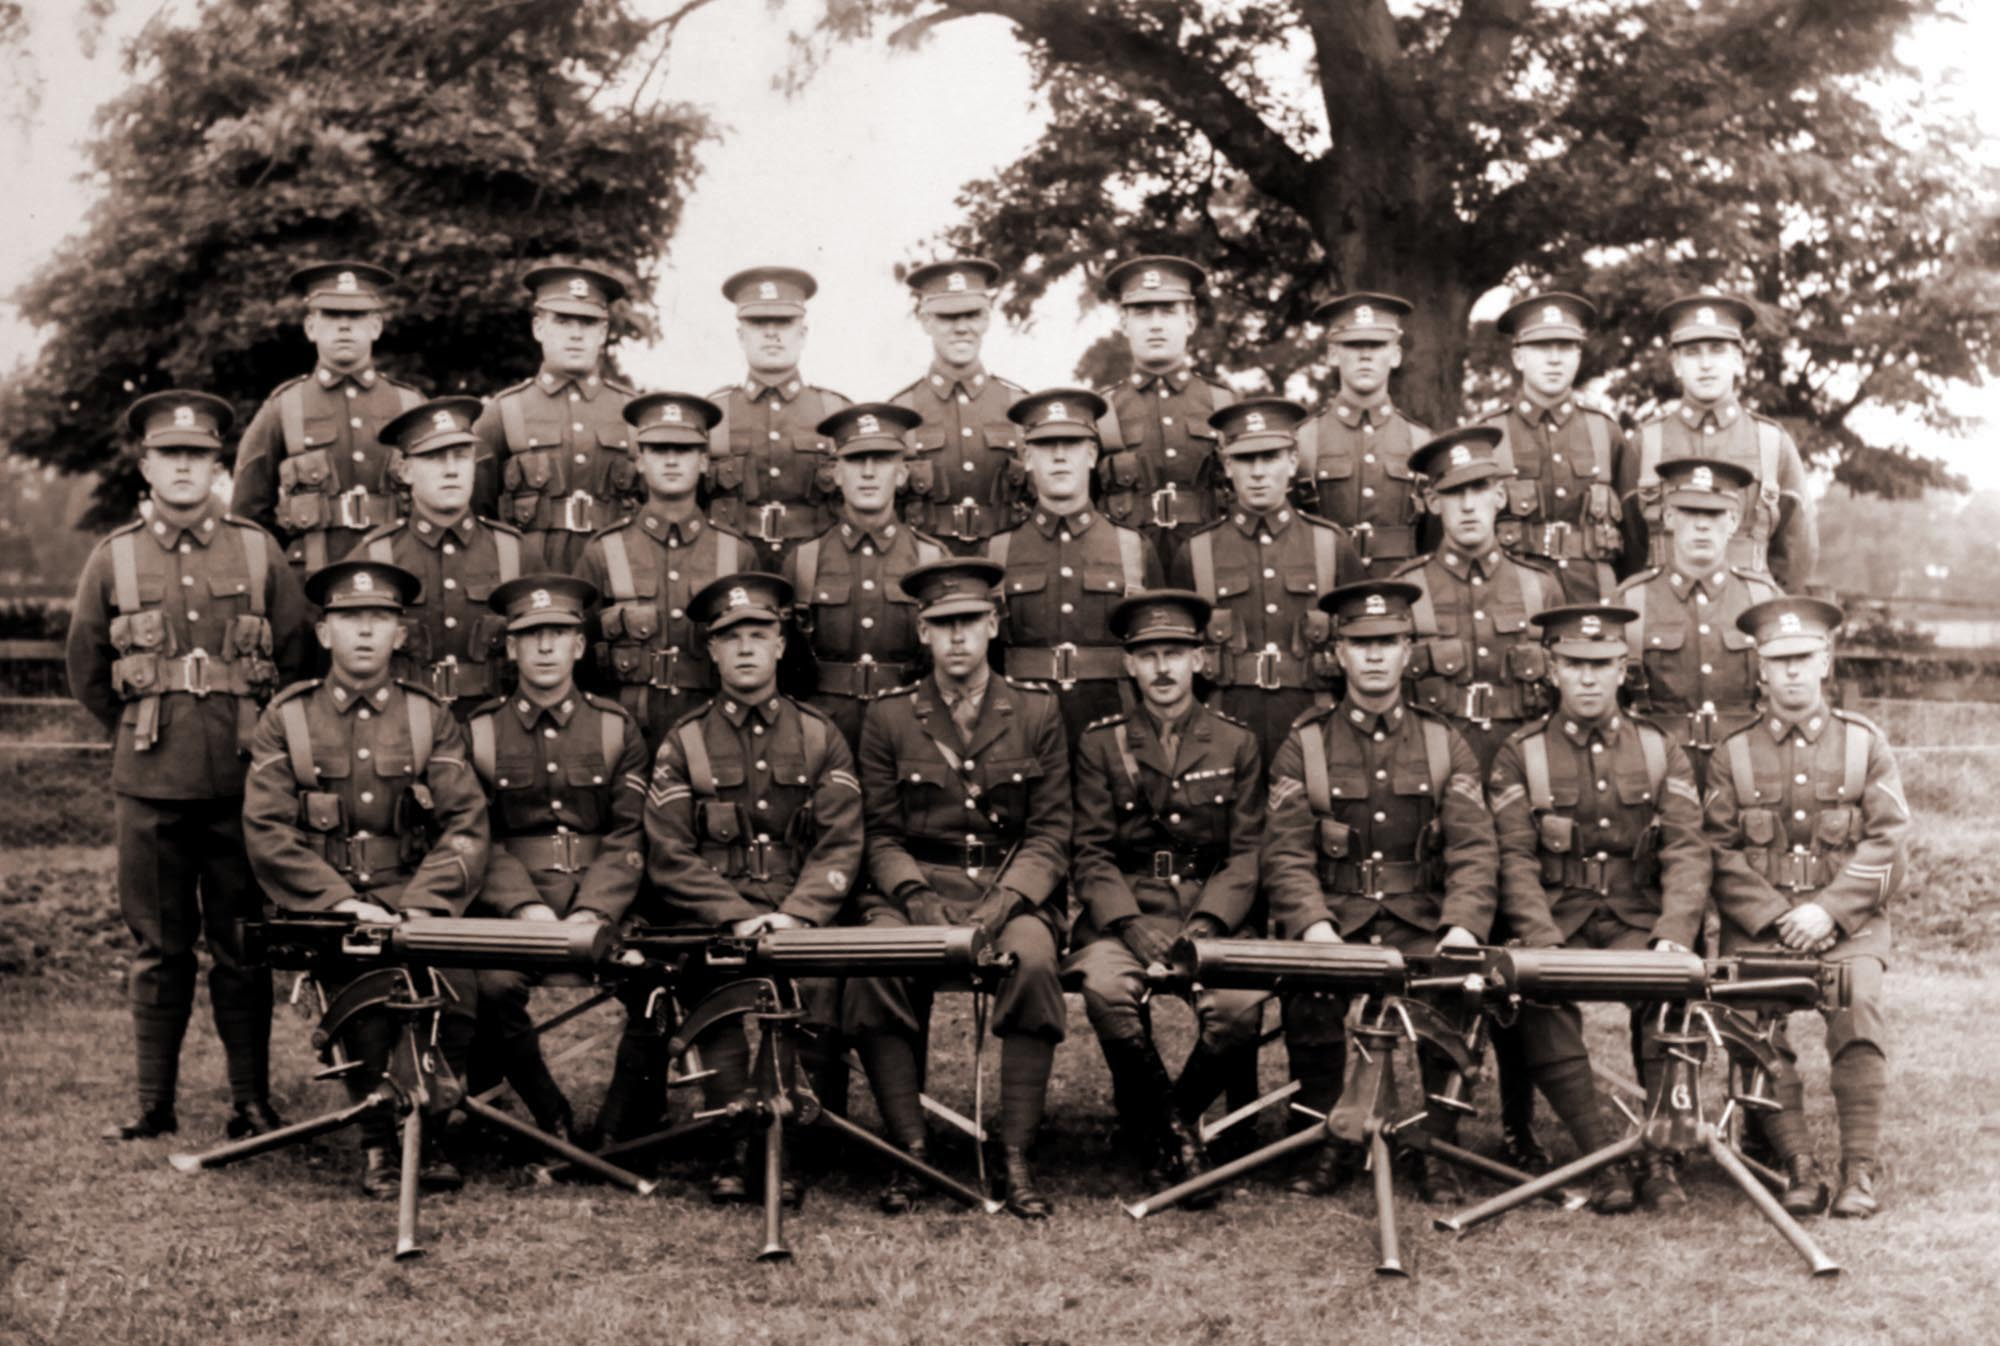 Leicester Regiment Soldiers, 1931 - Leicestershire Record Office